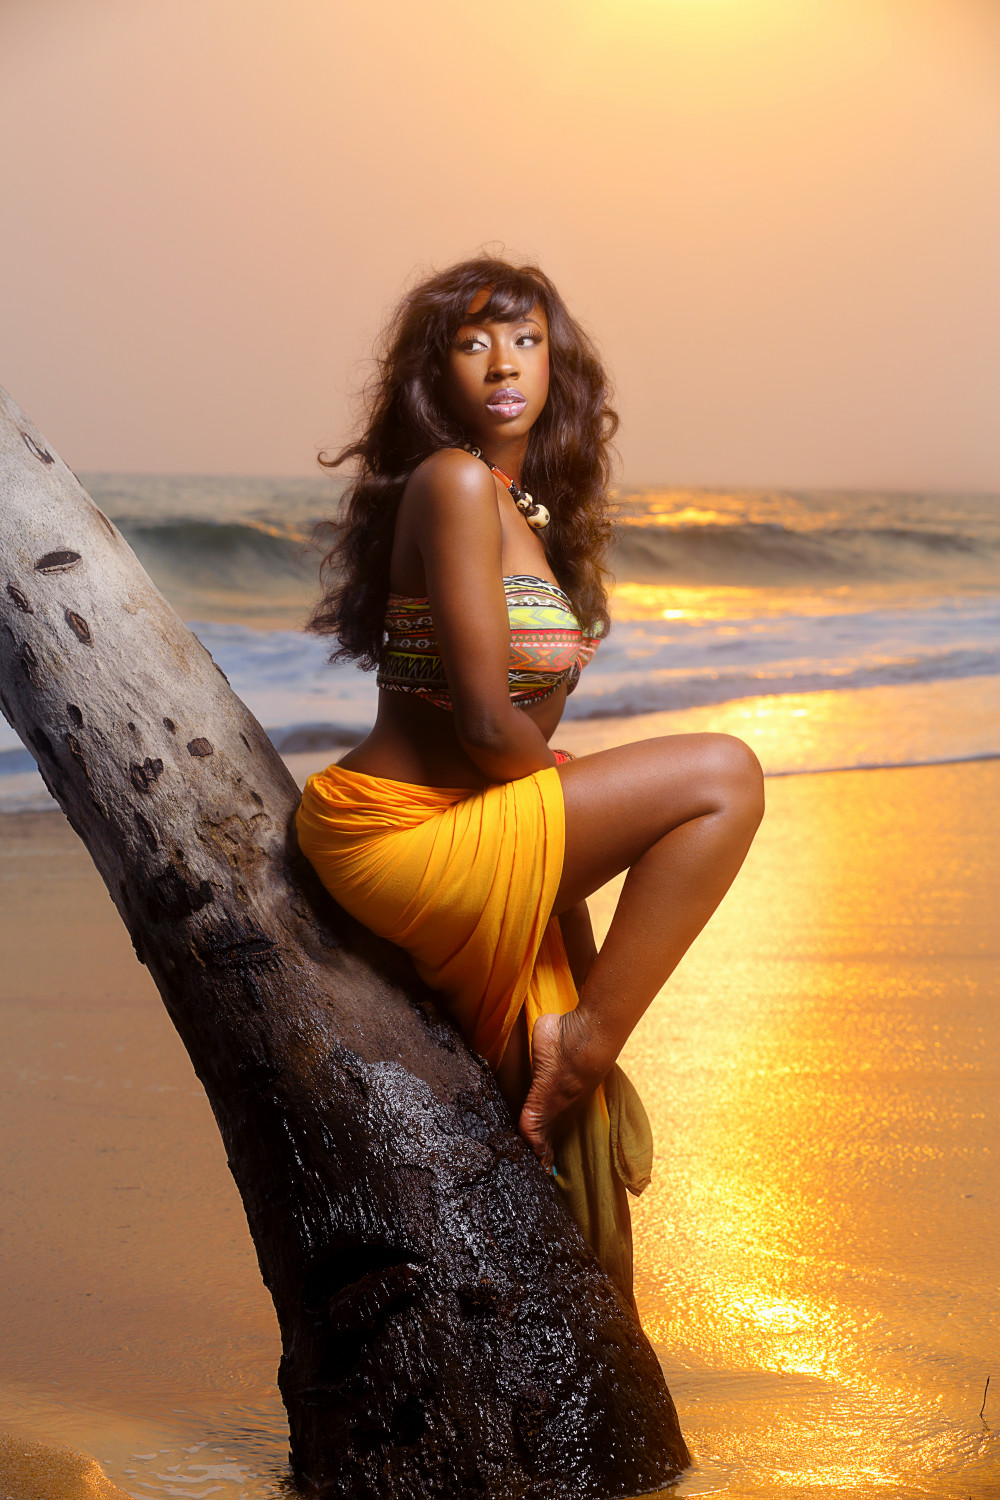 beverly naya fifty shades of black beauty nollywood actress beverly naya is passionate about women of all shades being represented in the media she shares her essay on the topic exclusively